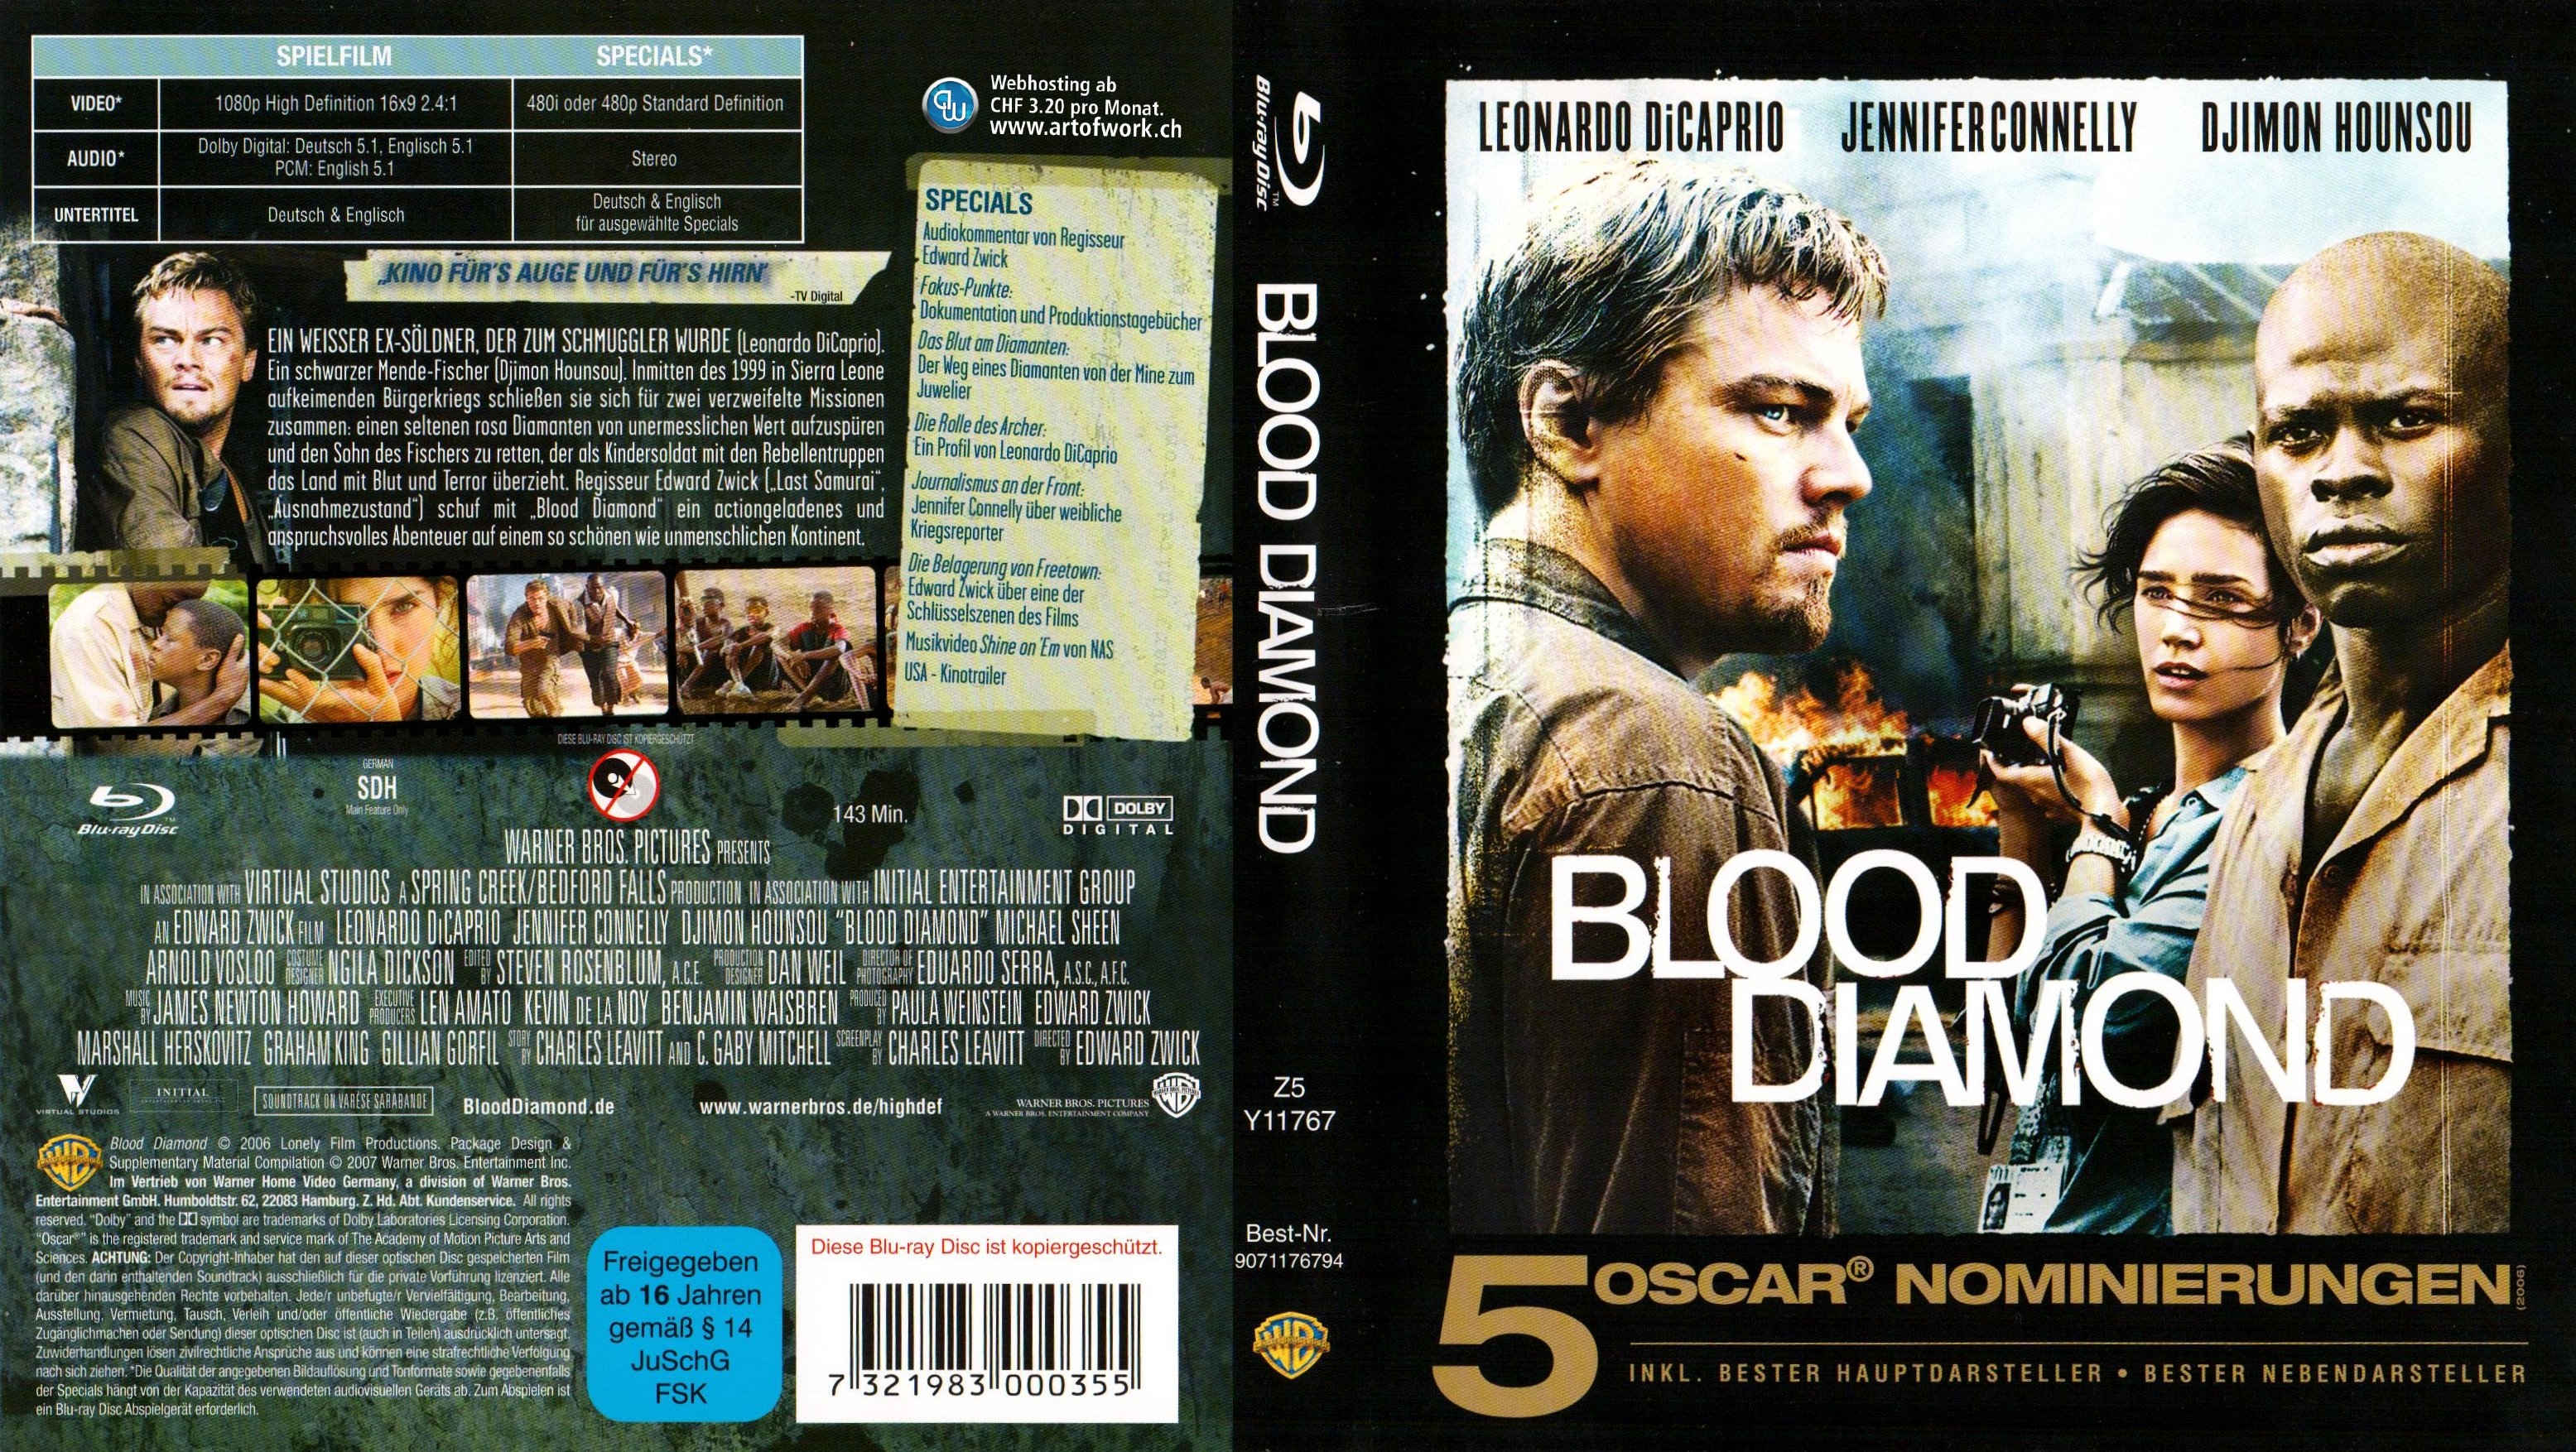 the of hounsou djimon picture photos diamond blood movie